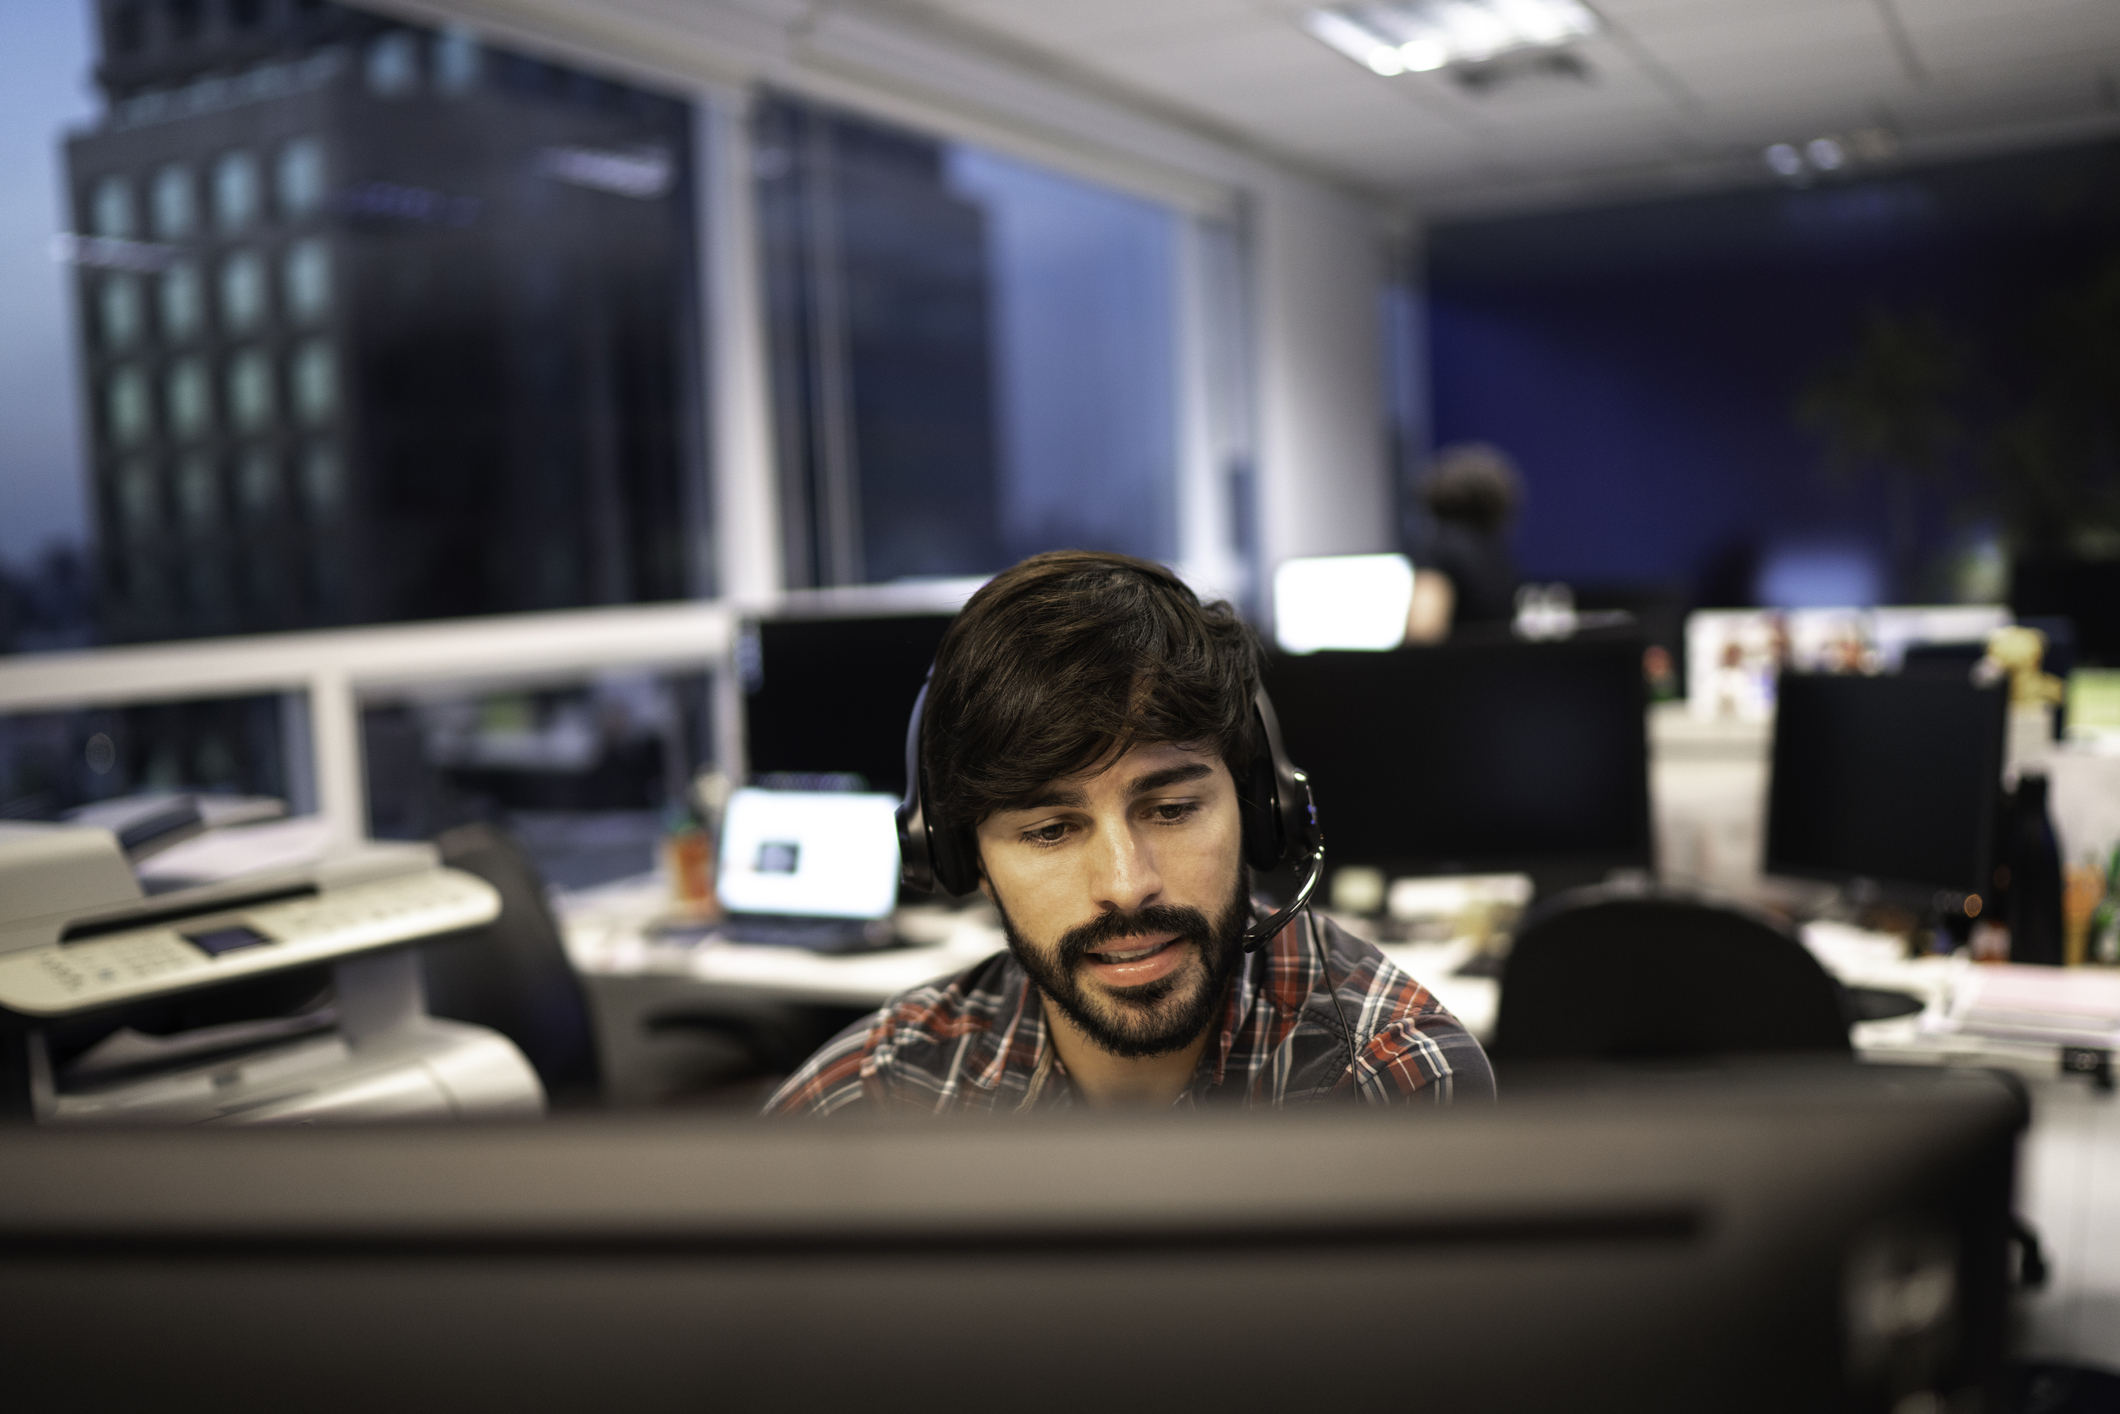 Employee working with headset in office